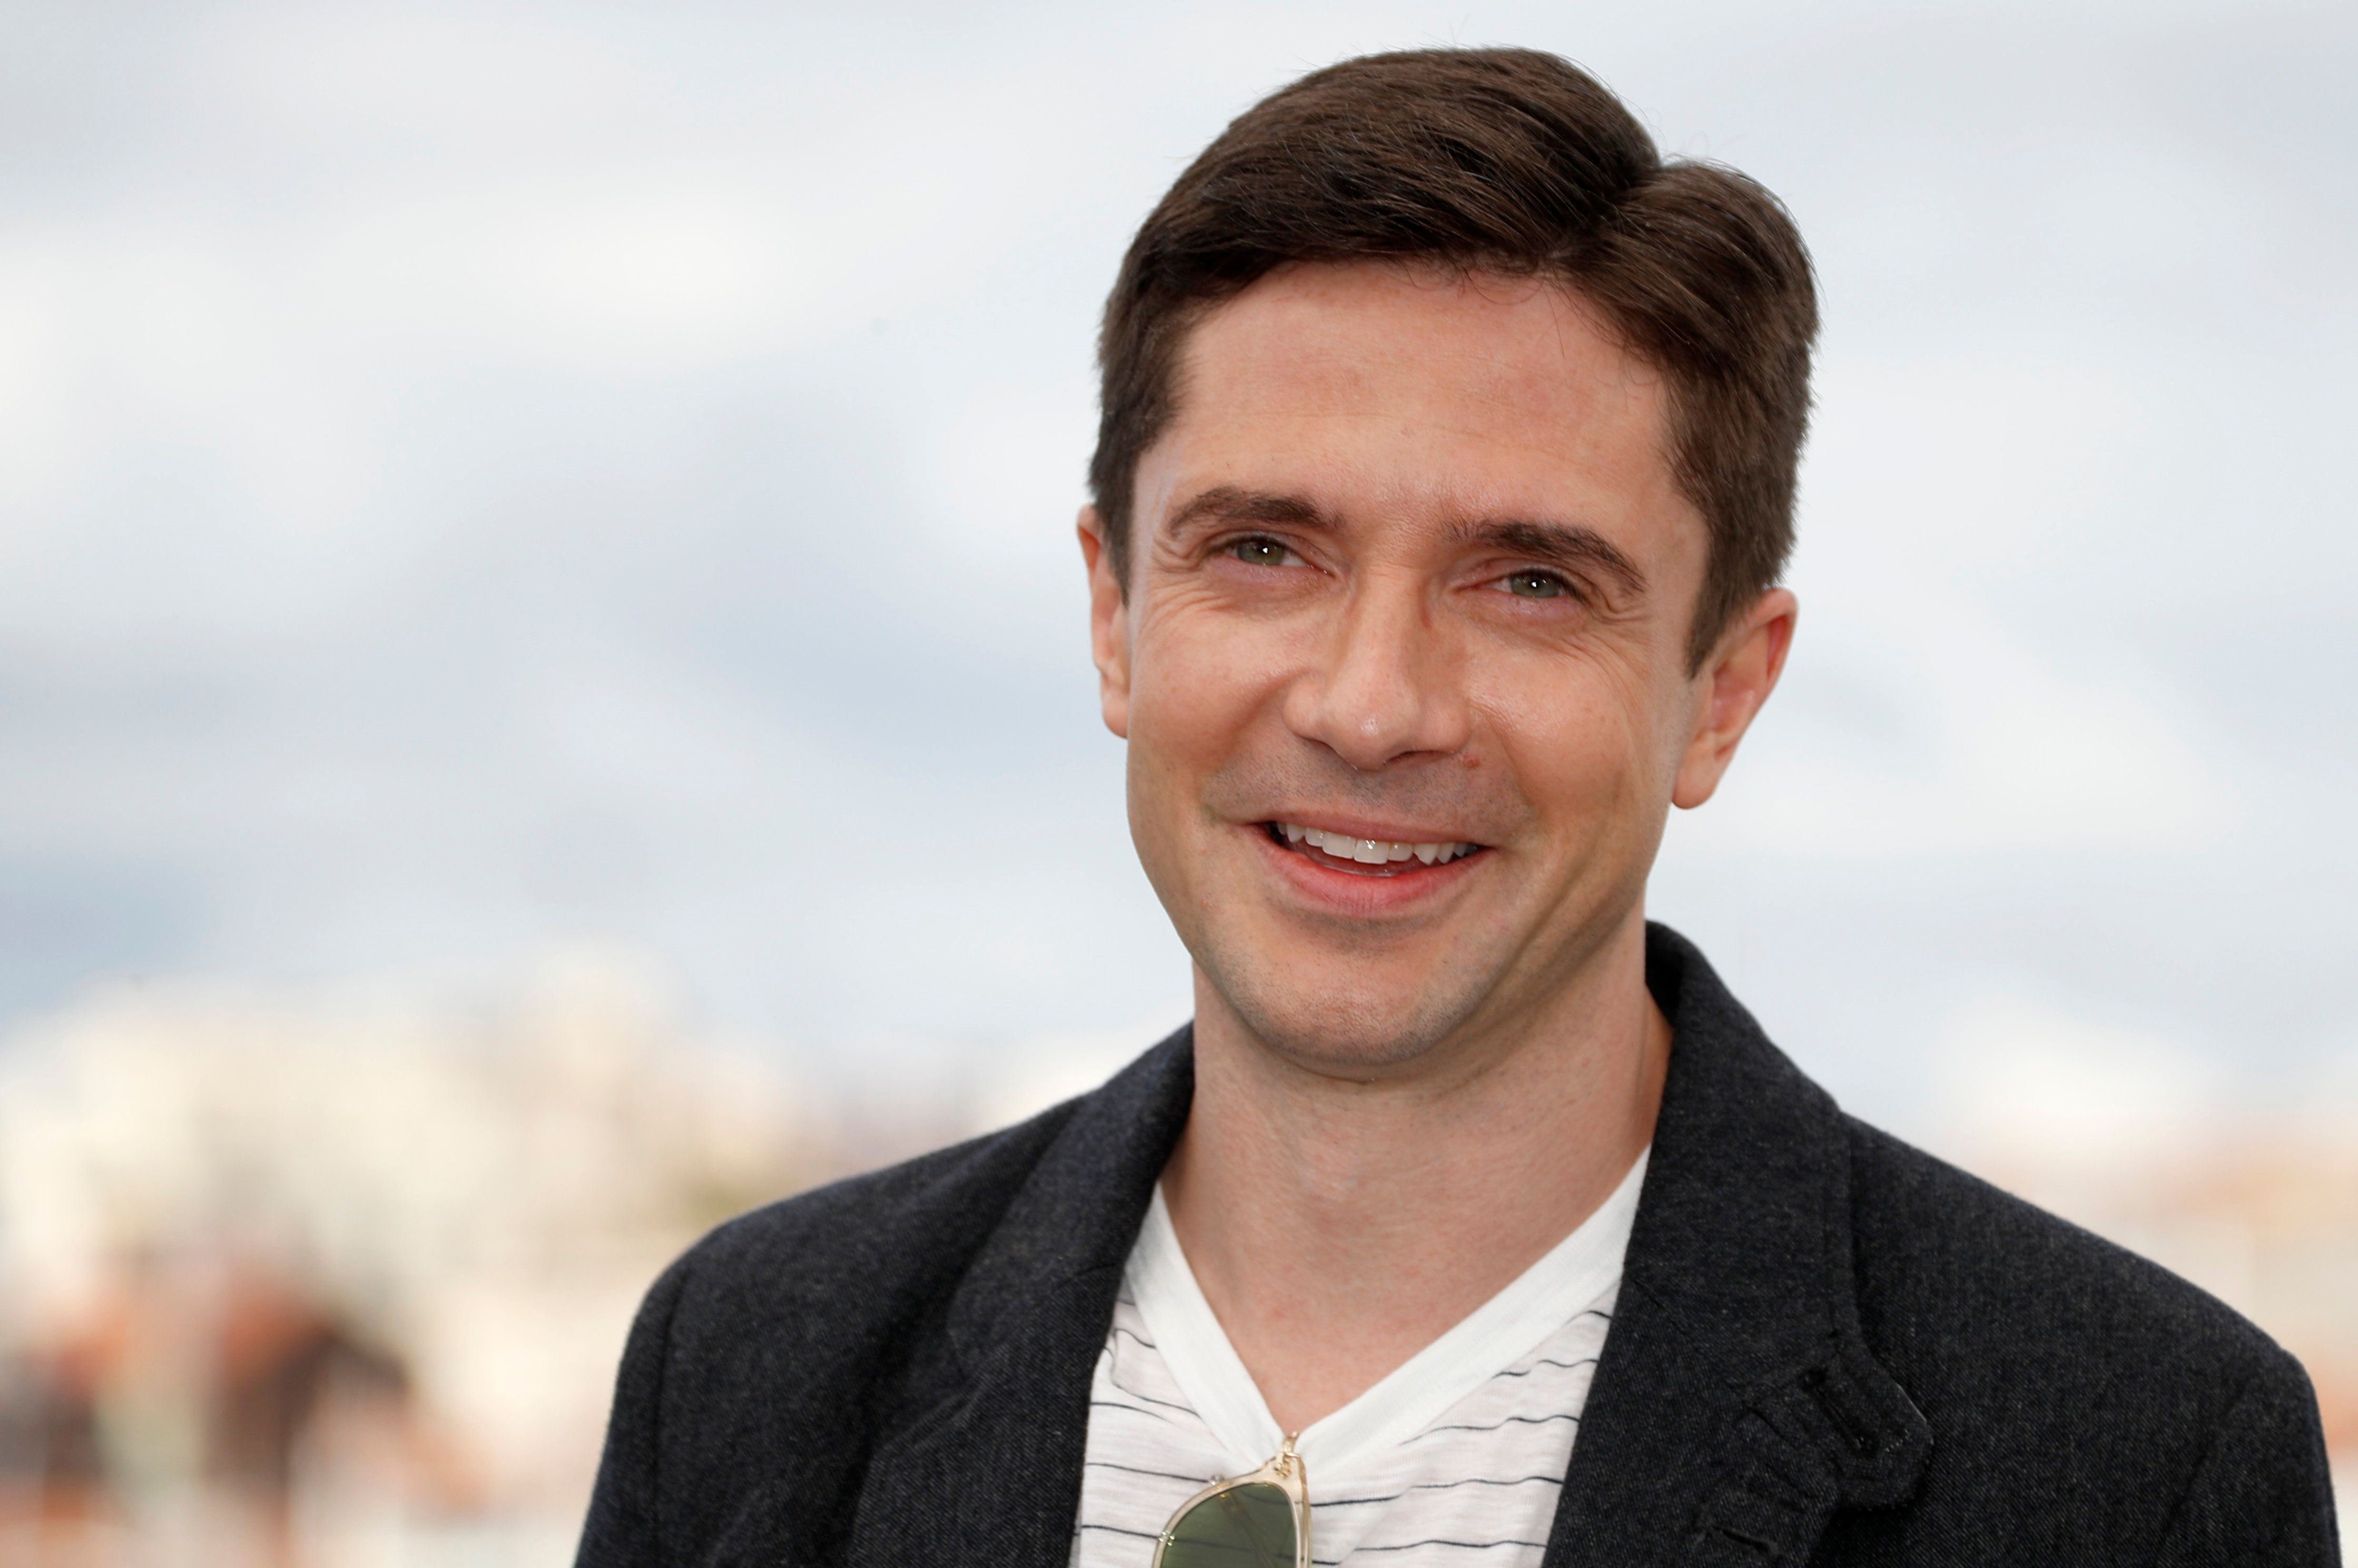 """71st Cannes Film Festival - Photocall for the film """"BlacKkKlansman"""" in competition- Cannes, France, May 15, 2018. Cast member Topher Grace. REUTERS/Eric Gaillard"""